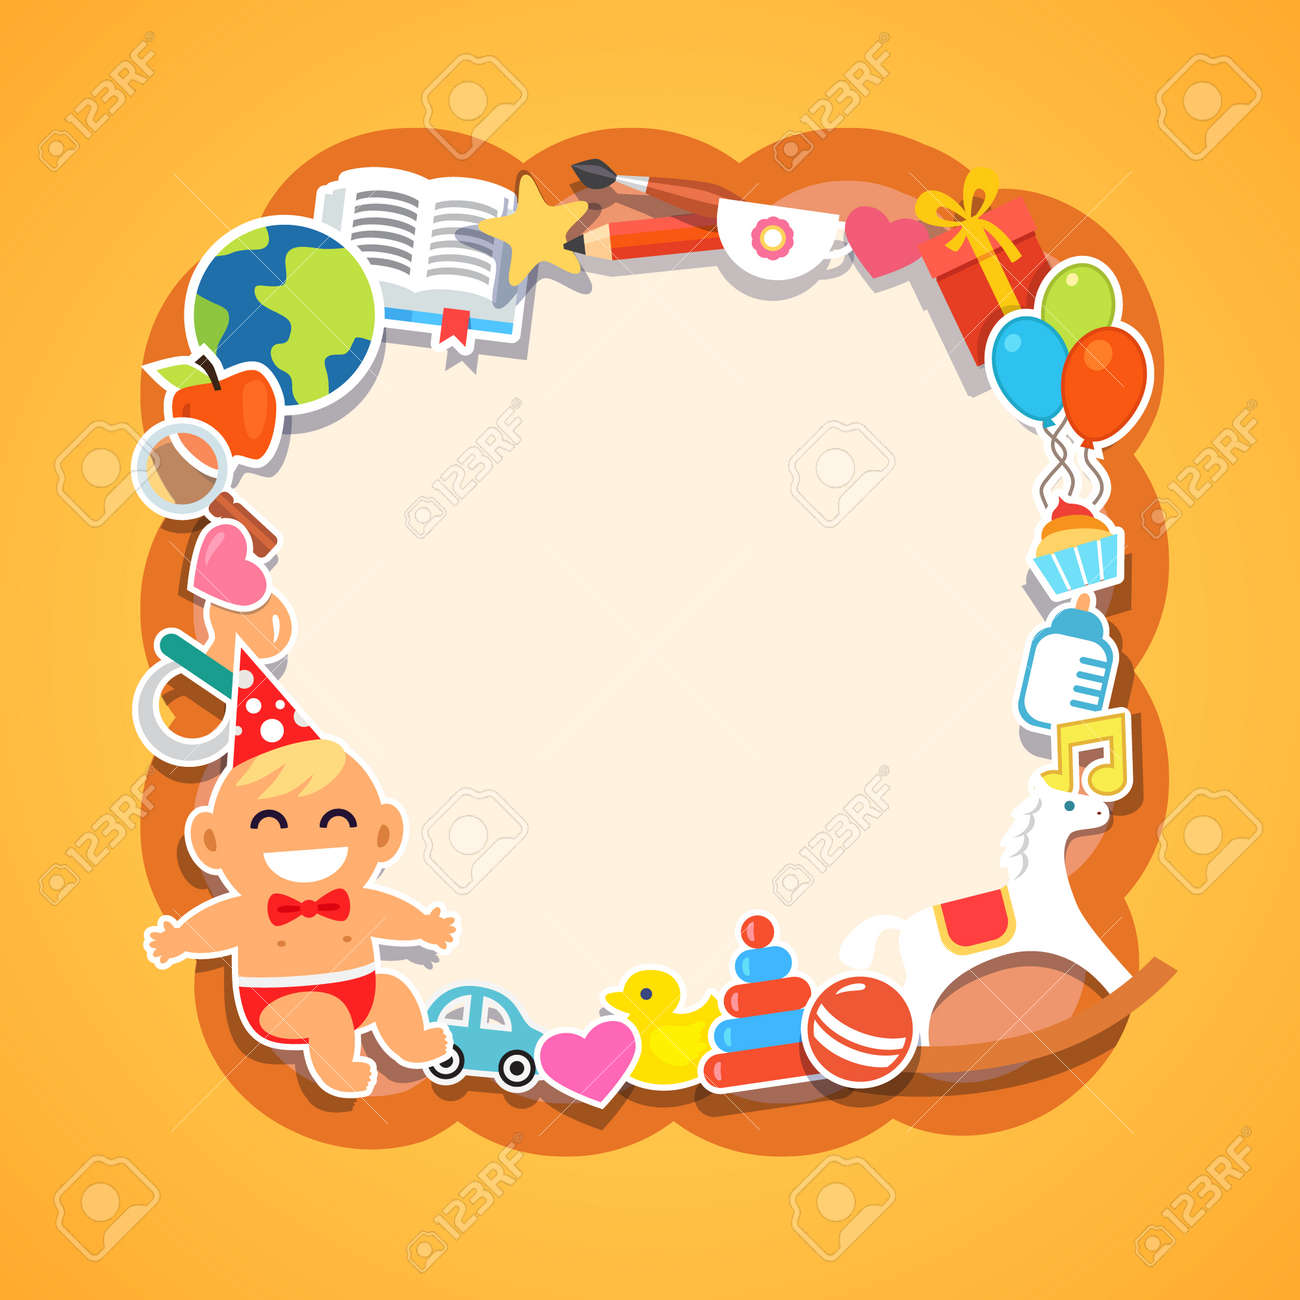 cartoon kids frame baby shower children party birthday or holiday event infant